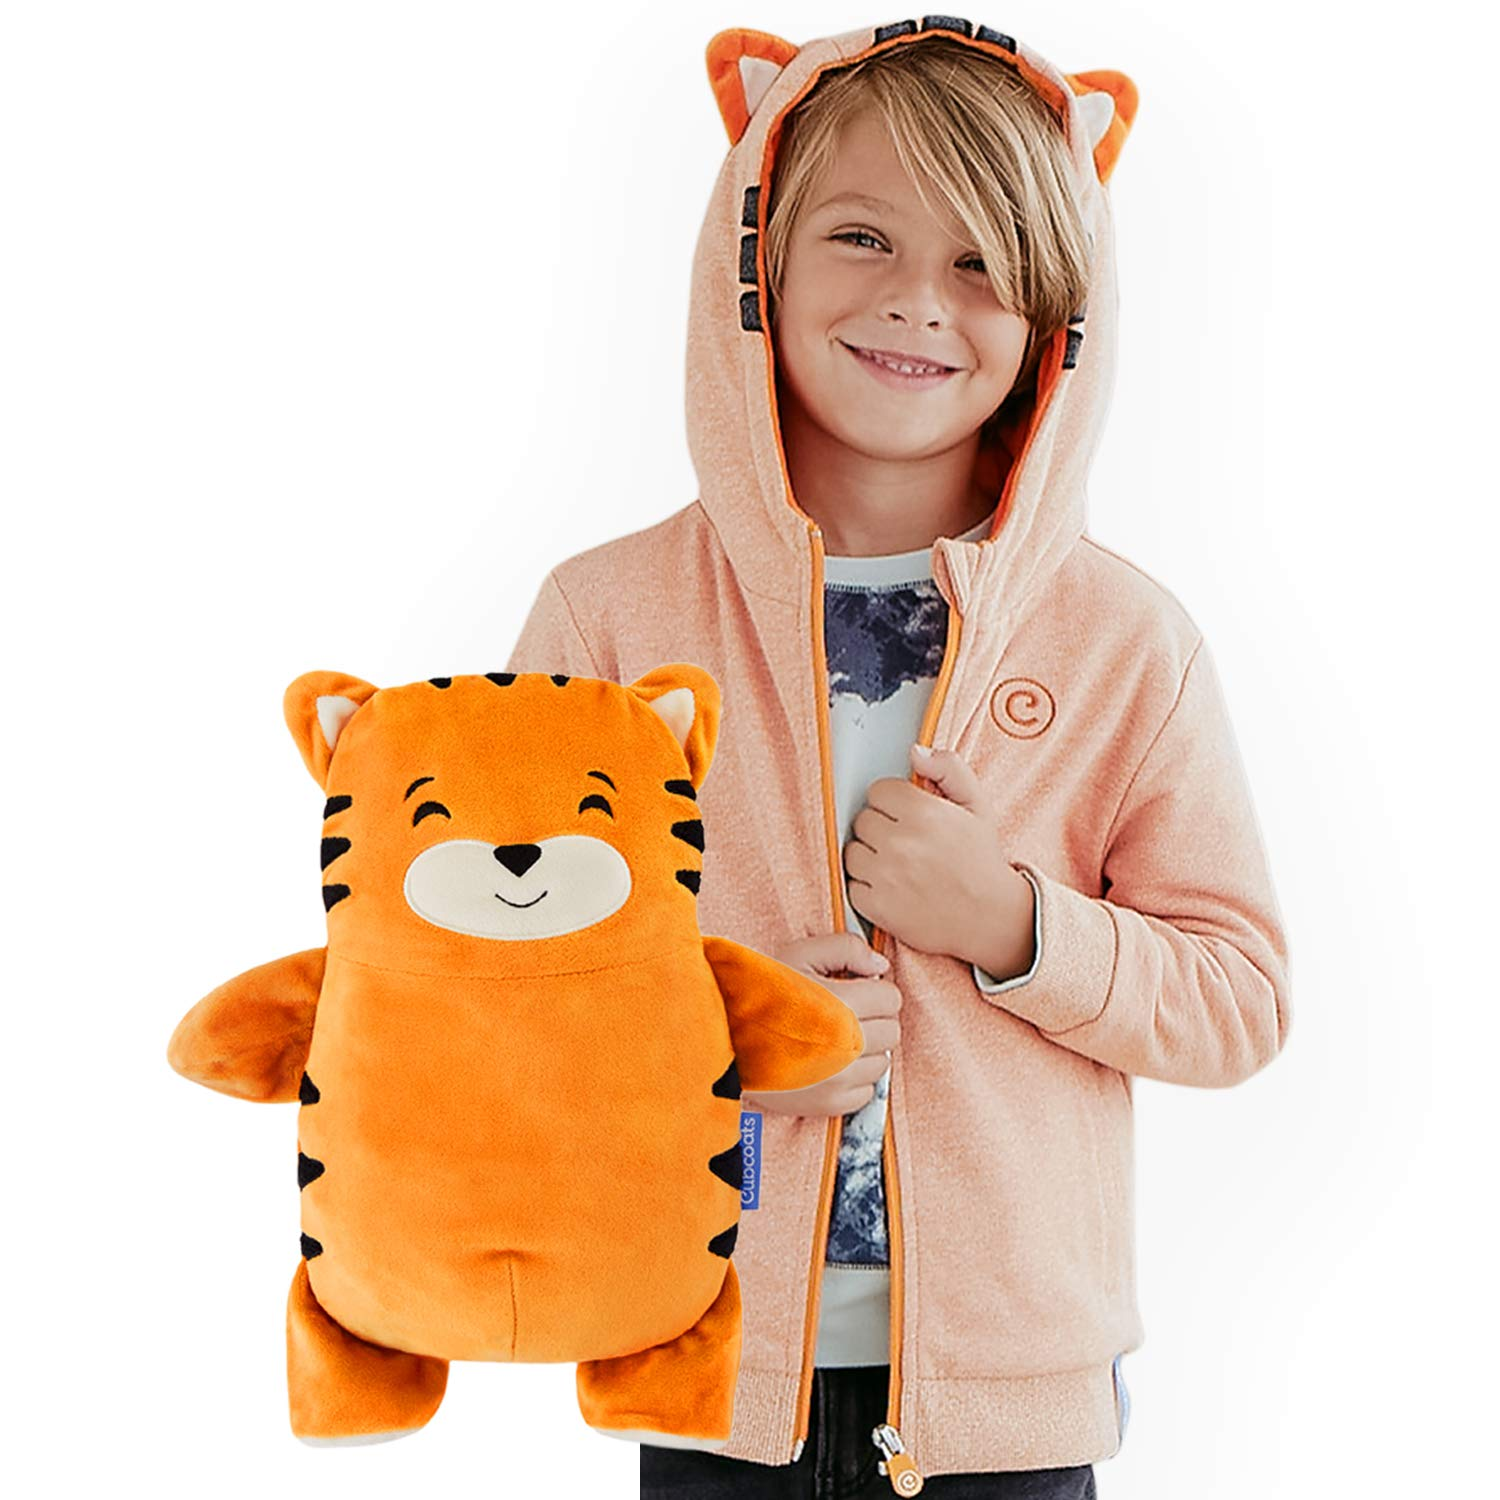 Cubcoats Tomo The Tiger - 2-in-1 Transforming Hoodie & Soft Plushie - Orange